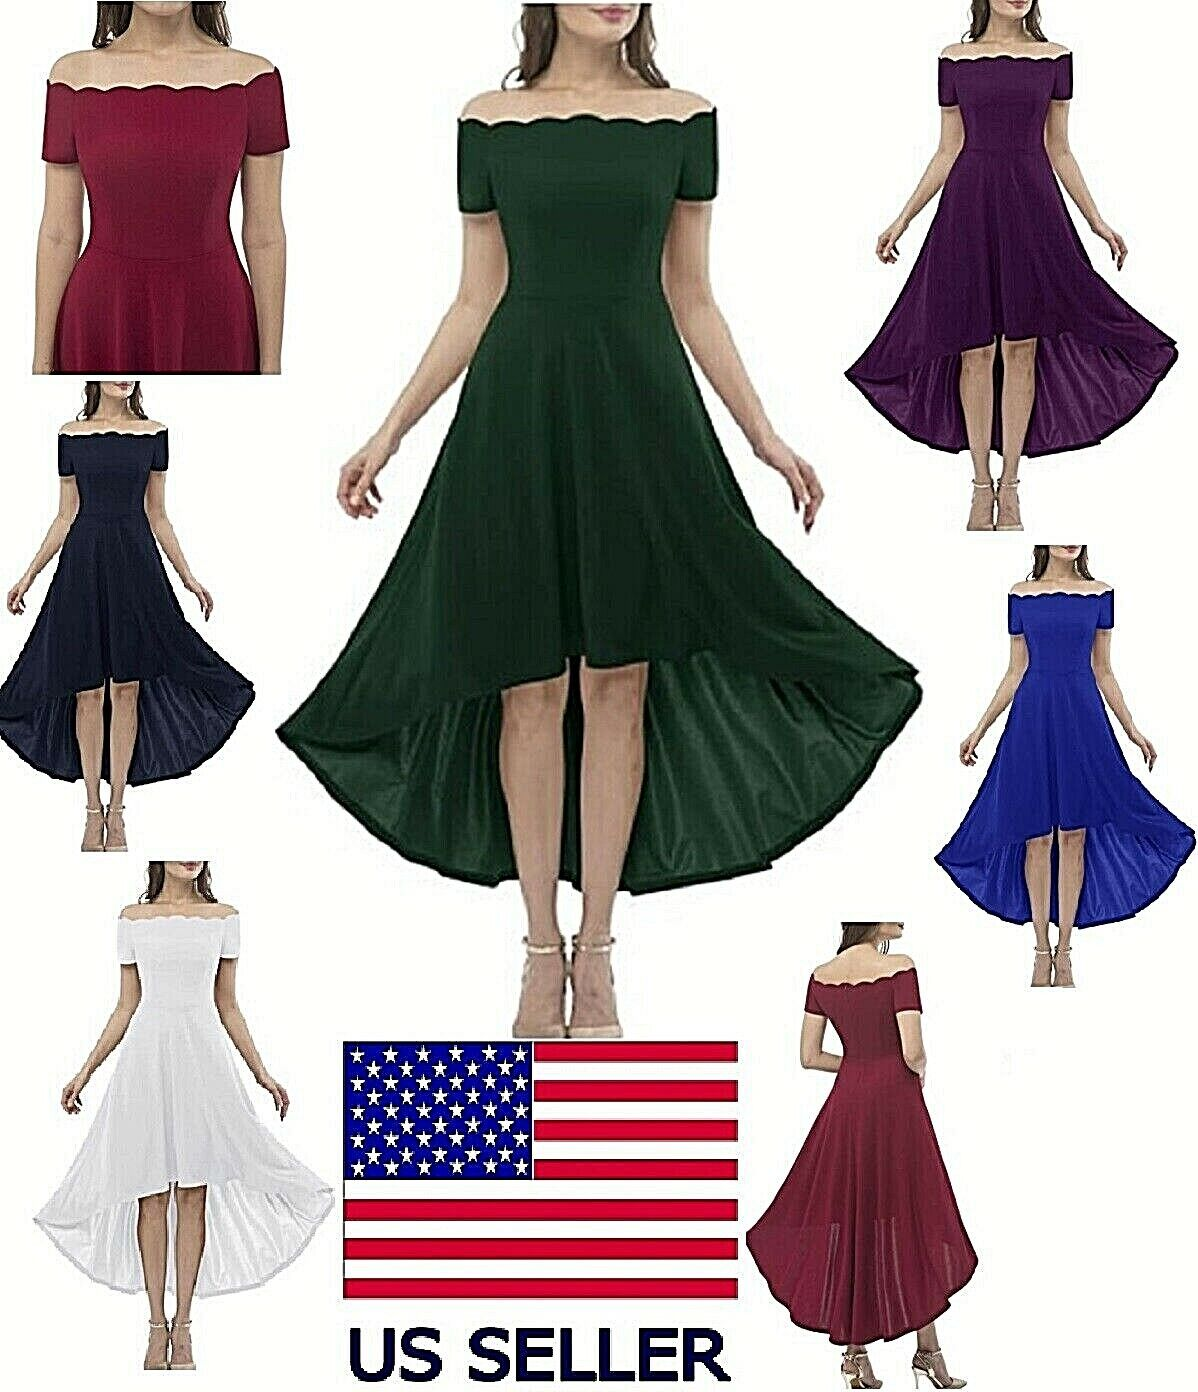 Women's Vintage Swing Dress Off Shoulder Cocktail Party Dress Hi-Lo Formal Style Clothing, Shoes & Accessories